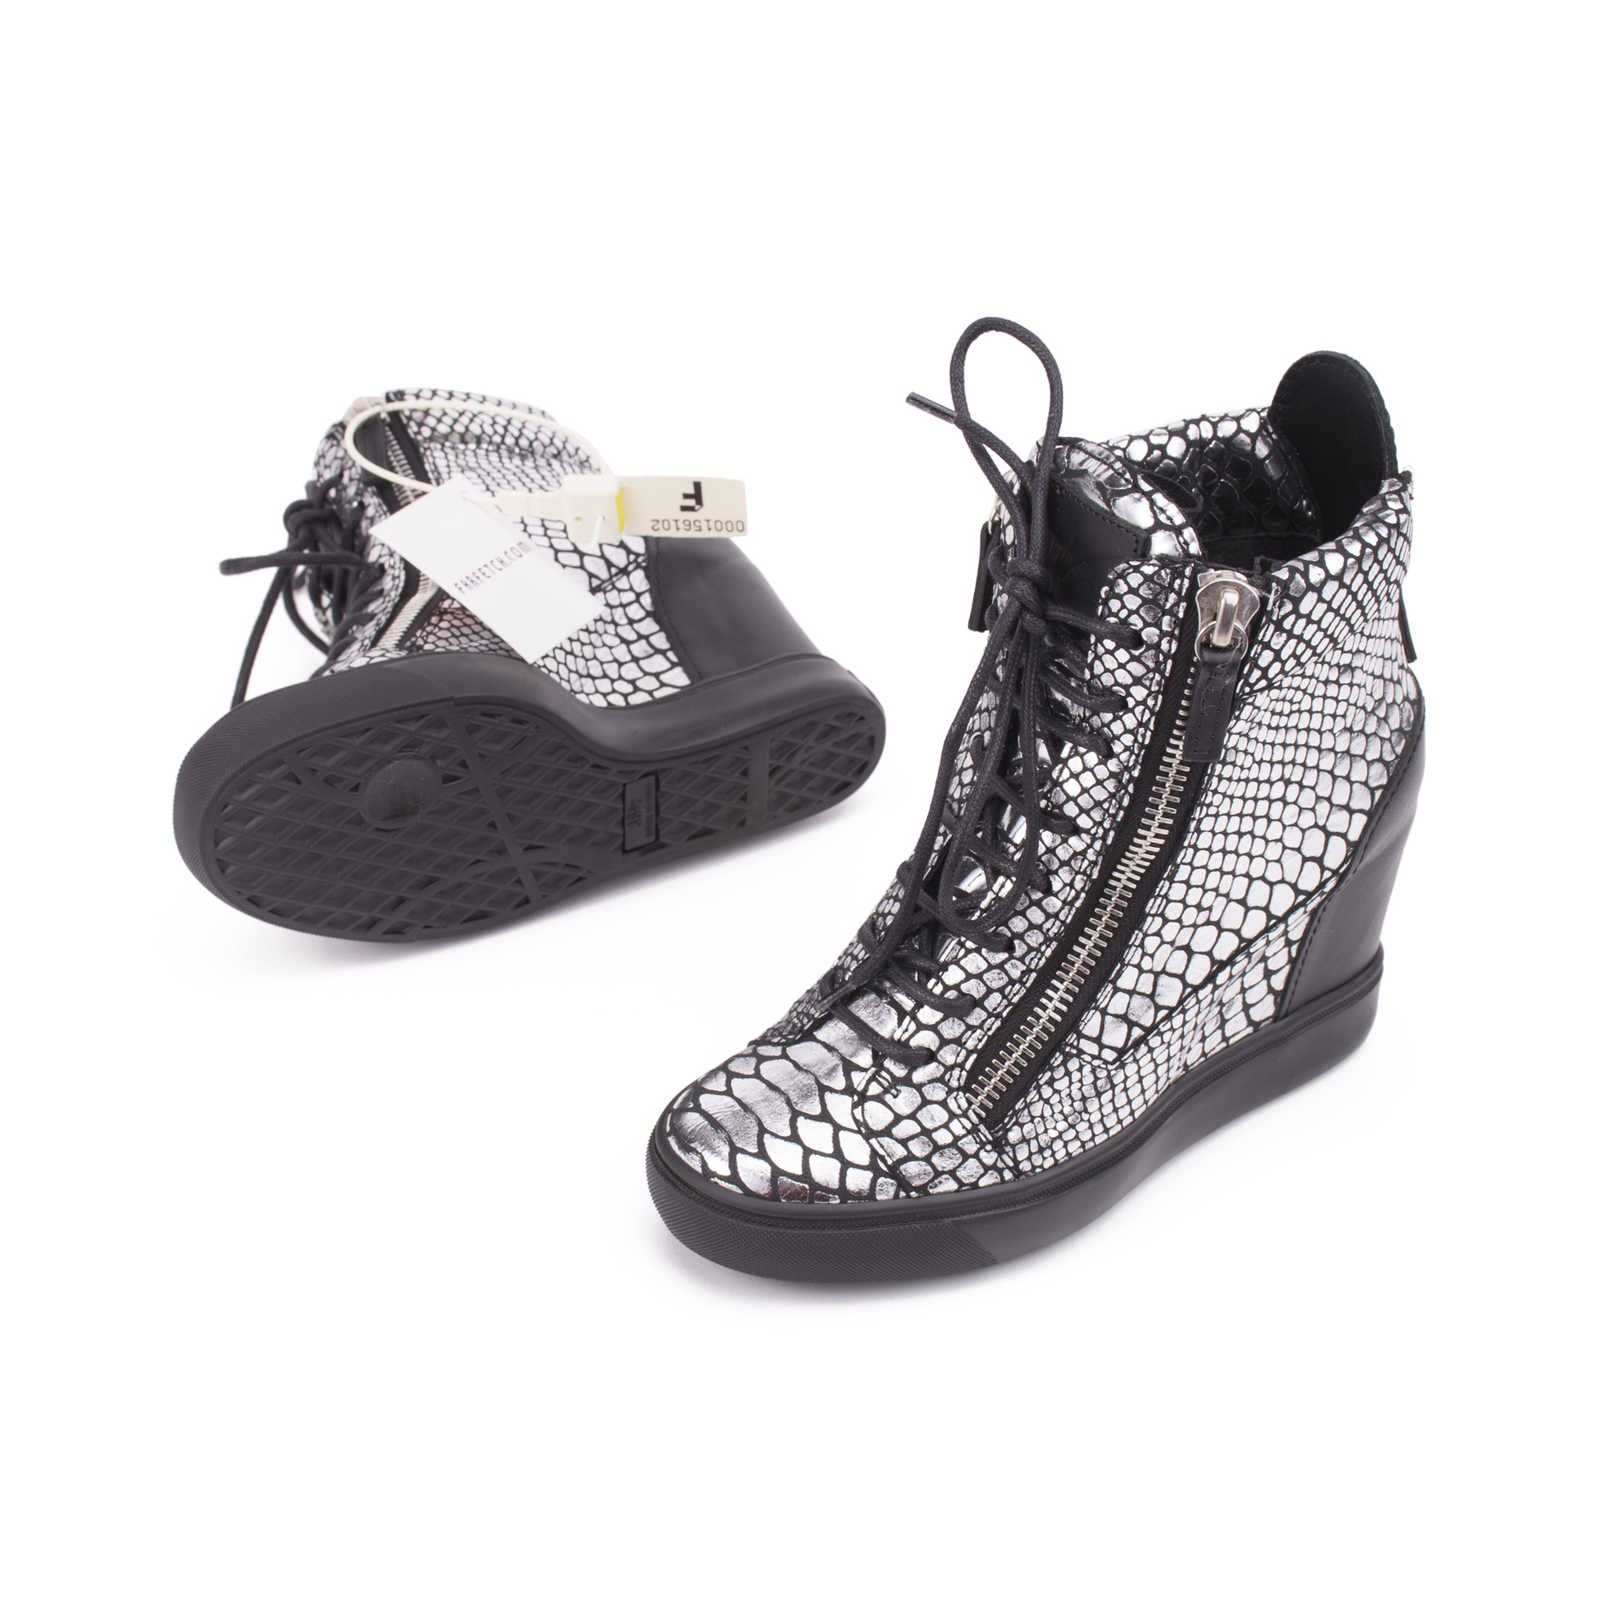 2d12862dc241 ... Authentic Second Hand Giuseppe Zanotti Snake-Embossed Metallic Wedge  Sneakers (PSS-200- ...